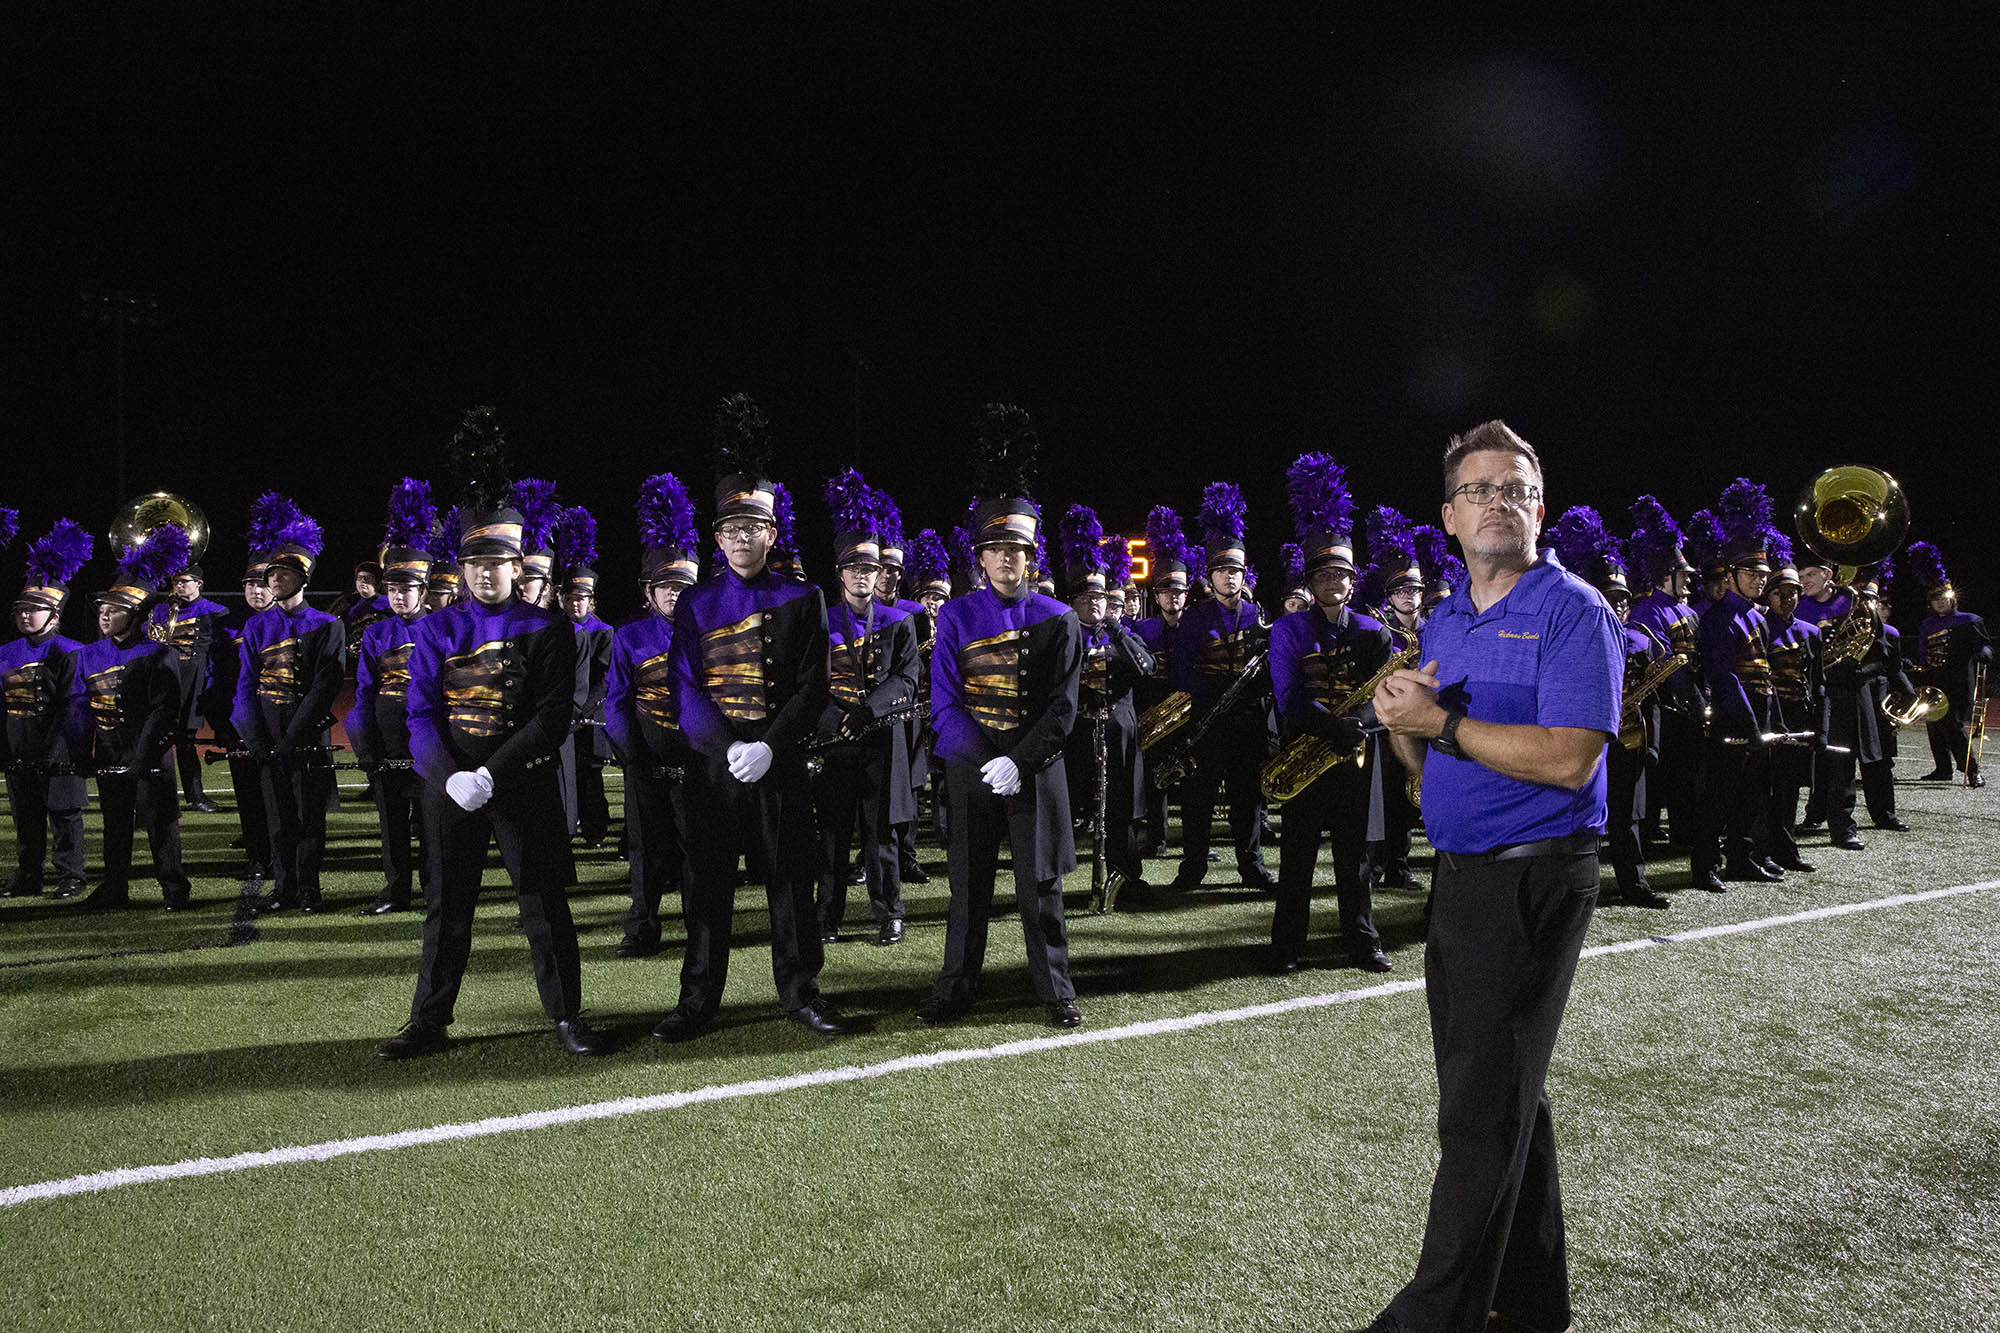 denis swope looks on with the hickman marching band behind him